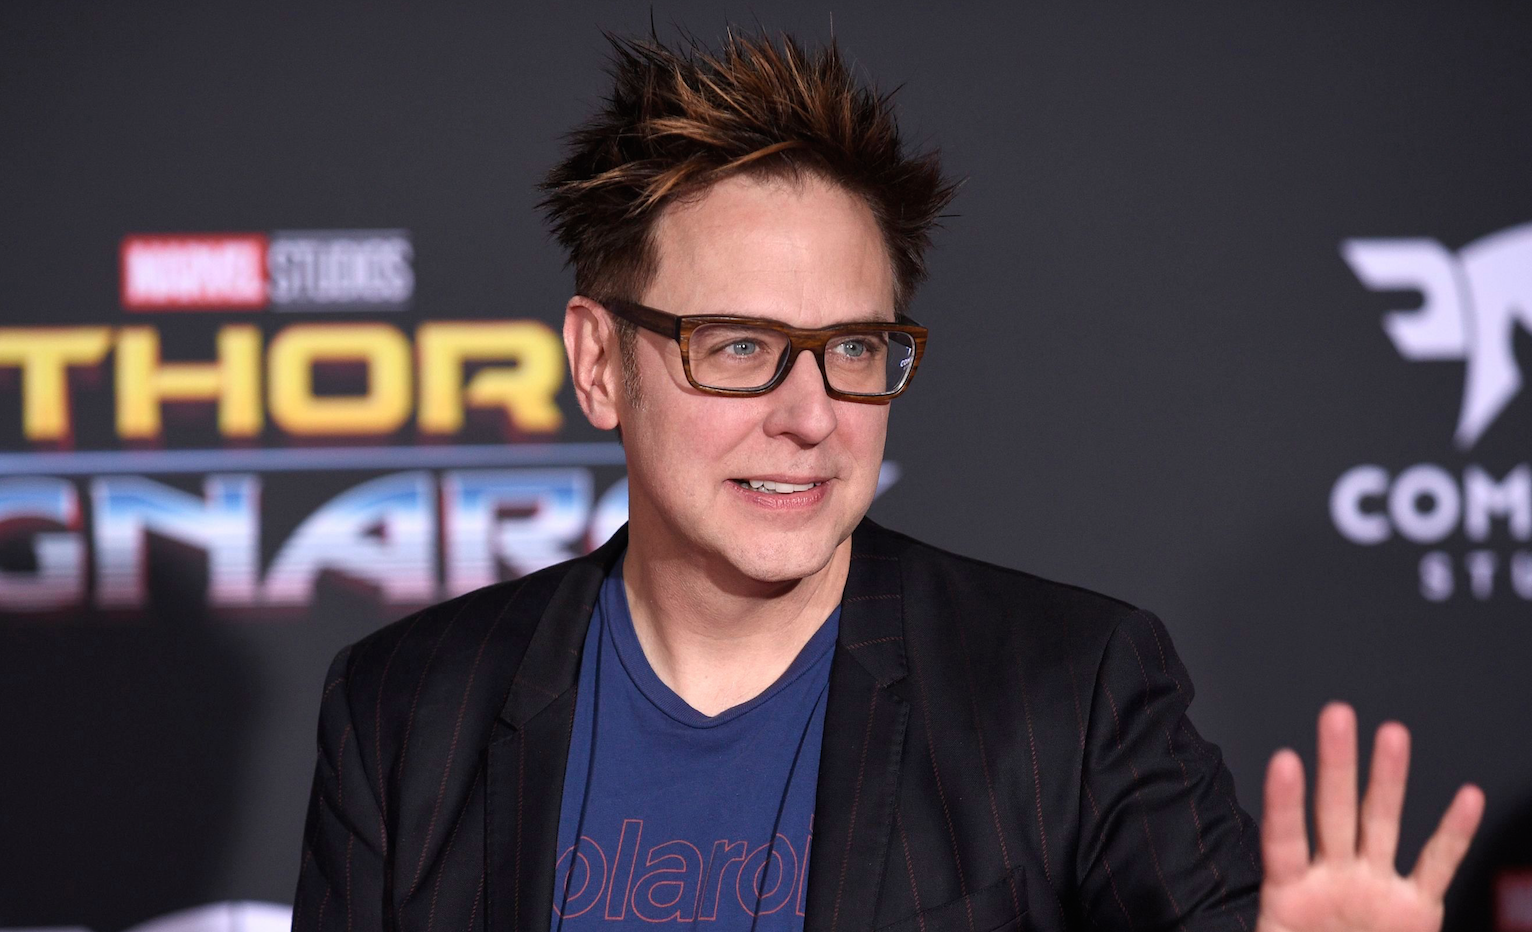 James Gunn Takes on Coppola and Scorsese: You're Geniuses, But You Don't Get Marvel